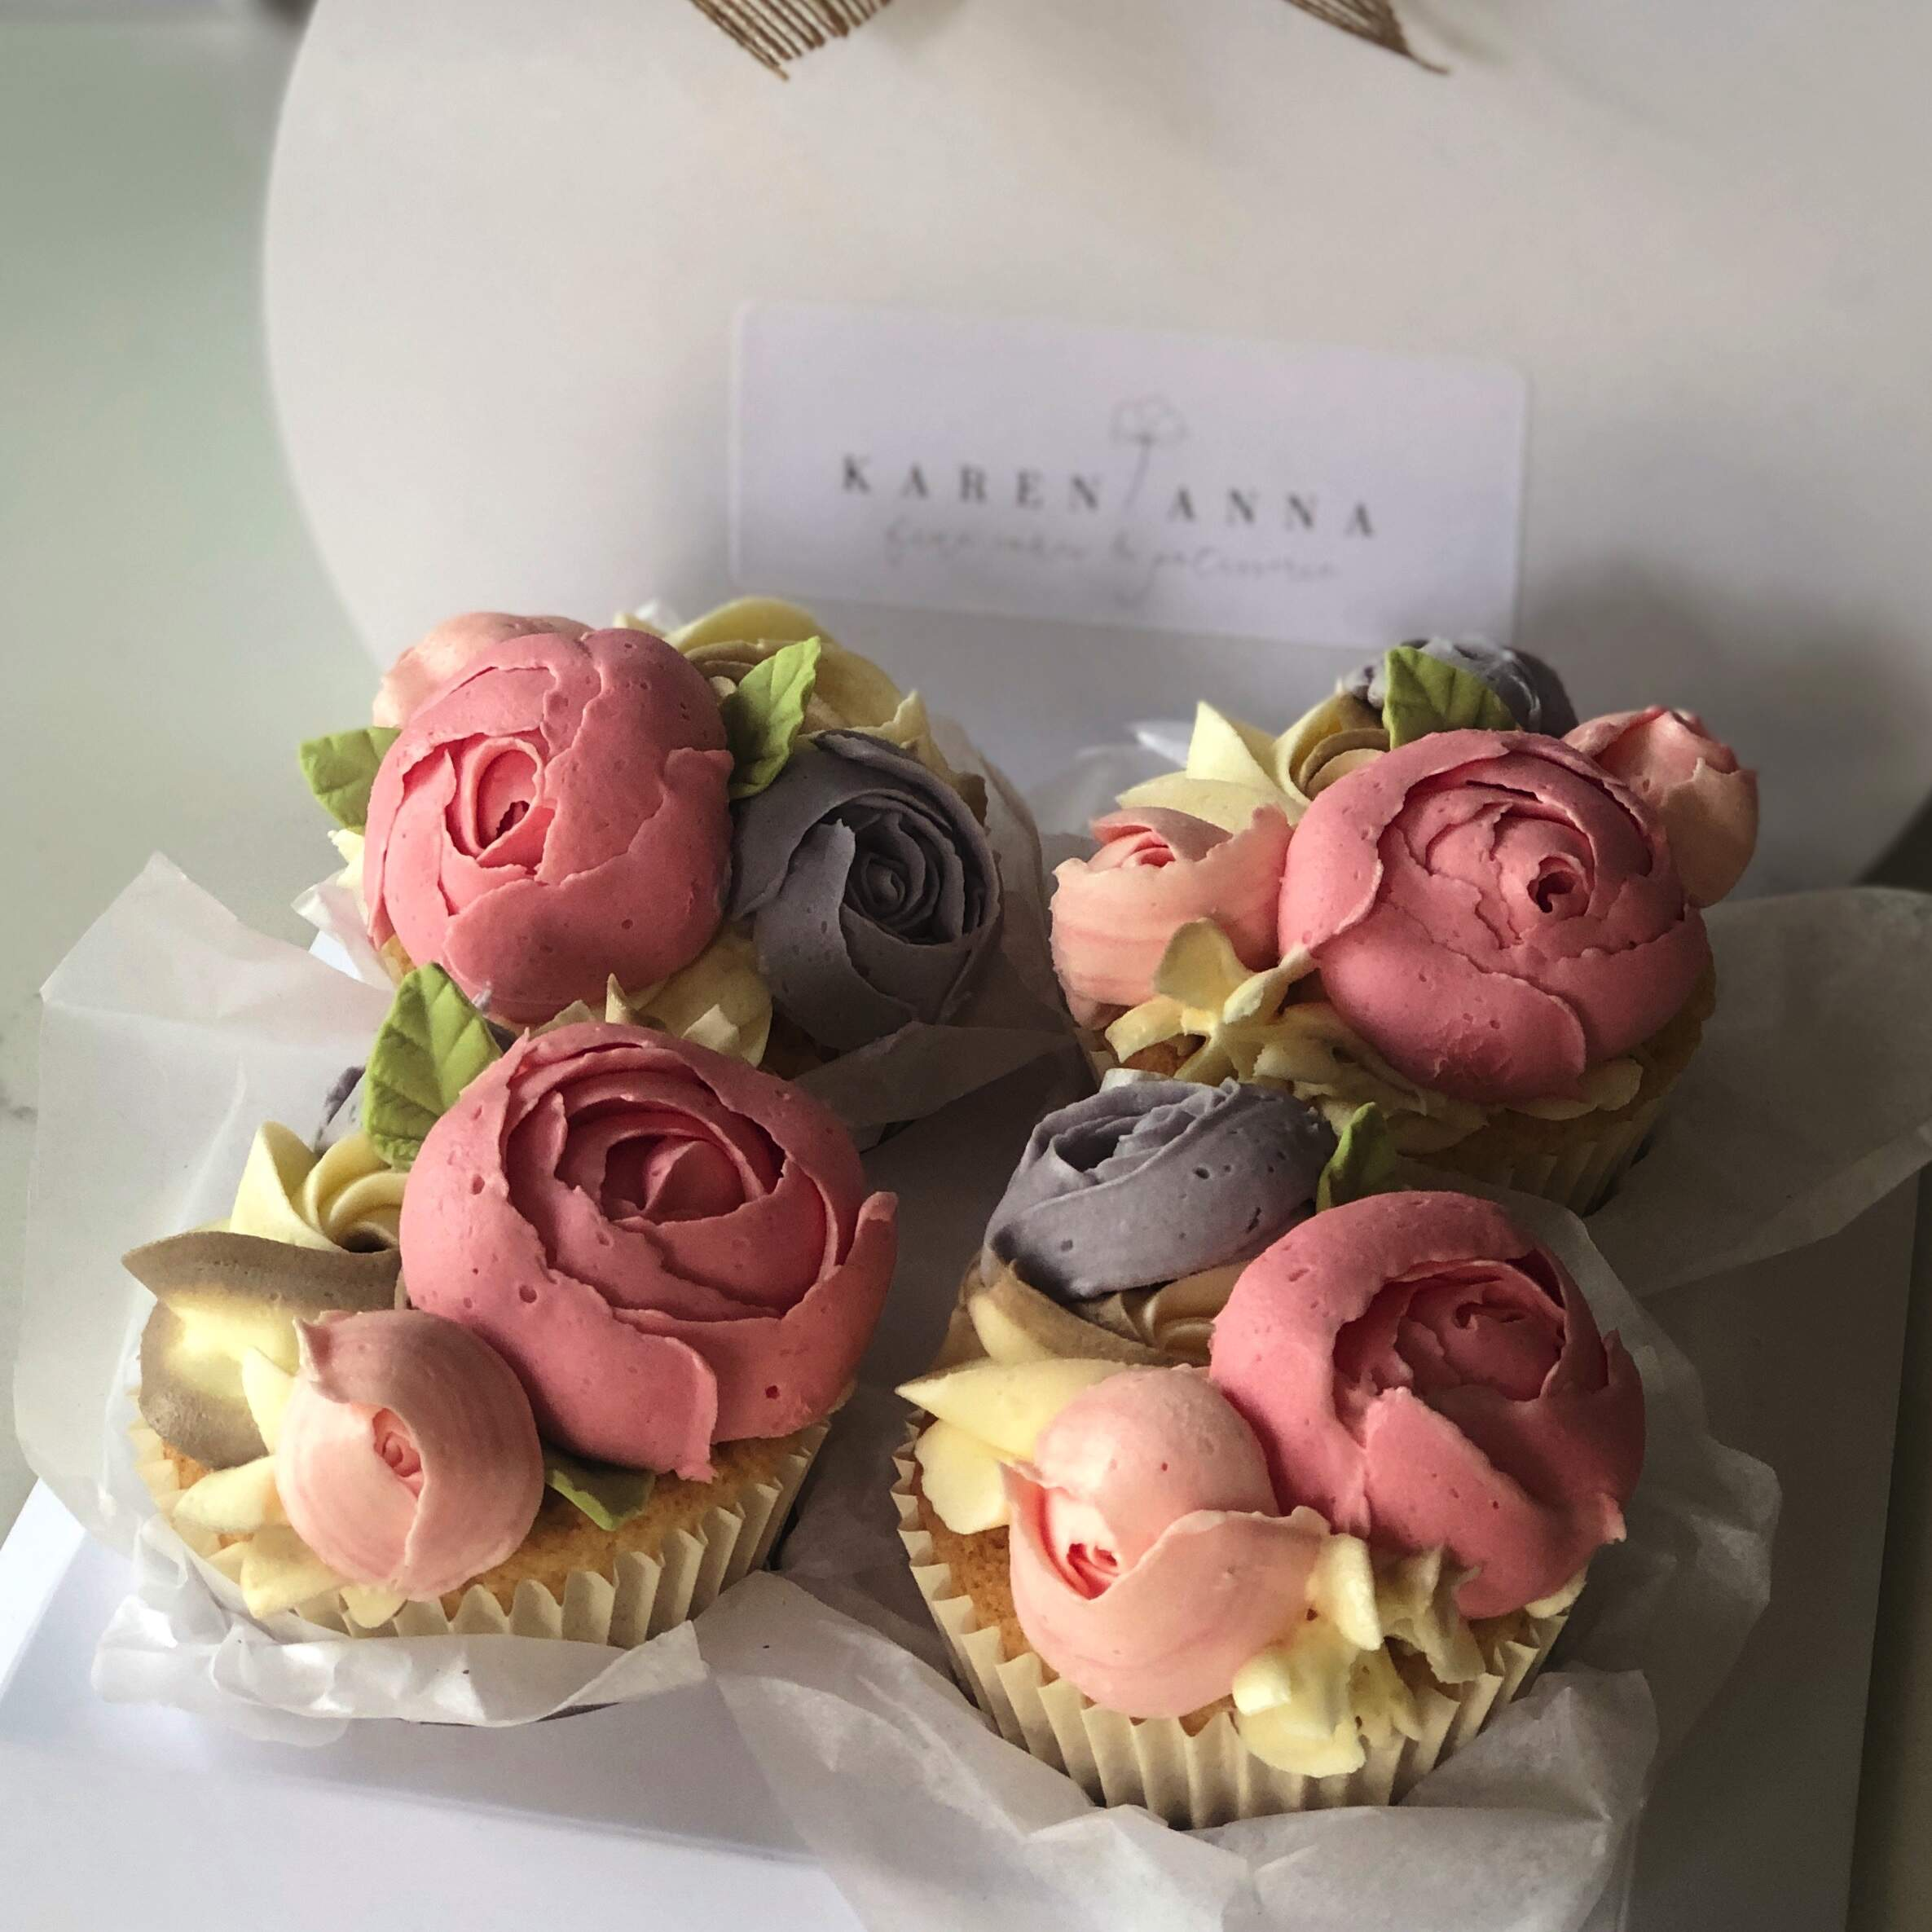 Buttercream Bloom Cupcakes - Gift Boxed